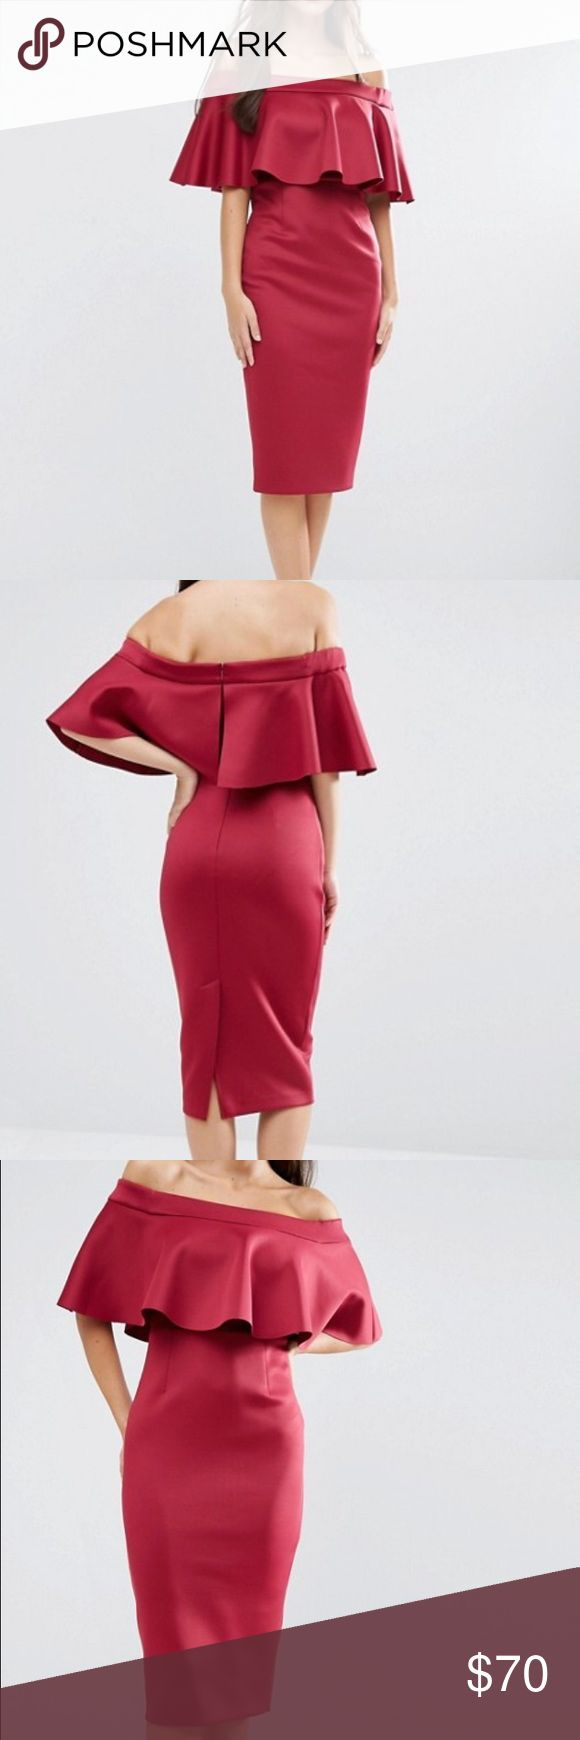 ASOS Scuba Off the Shoulder Pencil Dress UK size 6 / US size 2. Never worn or tried on, in perfectly new condition. Was originally $83 And almost $100 including tax and shipping. Beautiful red, comfortable, sleek fabric. Perfect for any party or special day! ASOS Dresses Midi